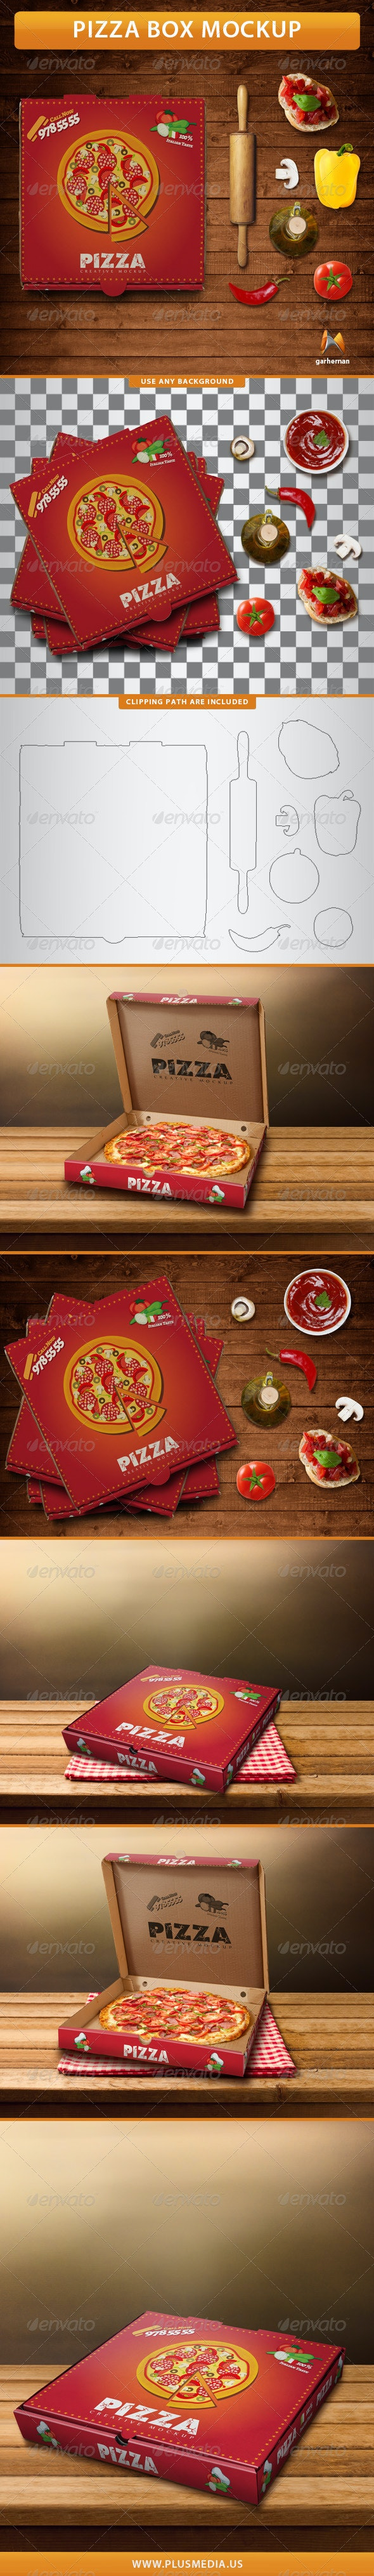 Pizza Box Mockup - Print Product Mock-Ups